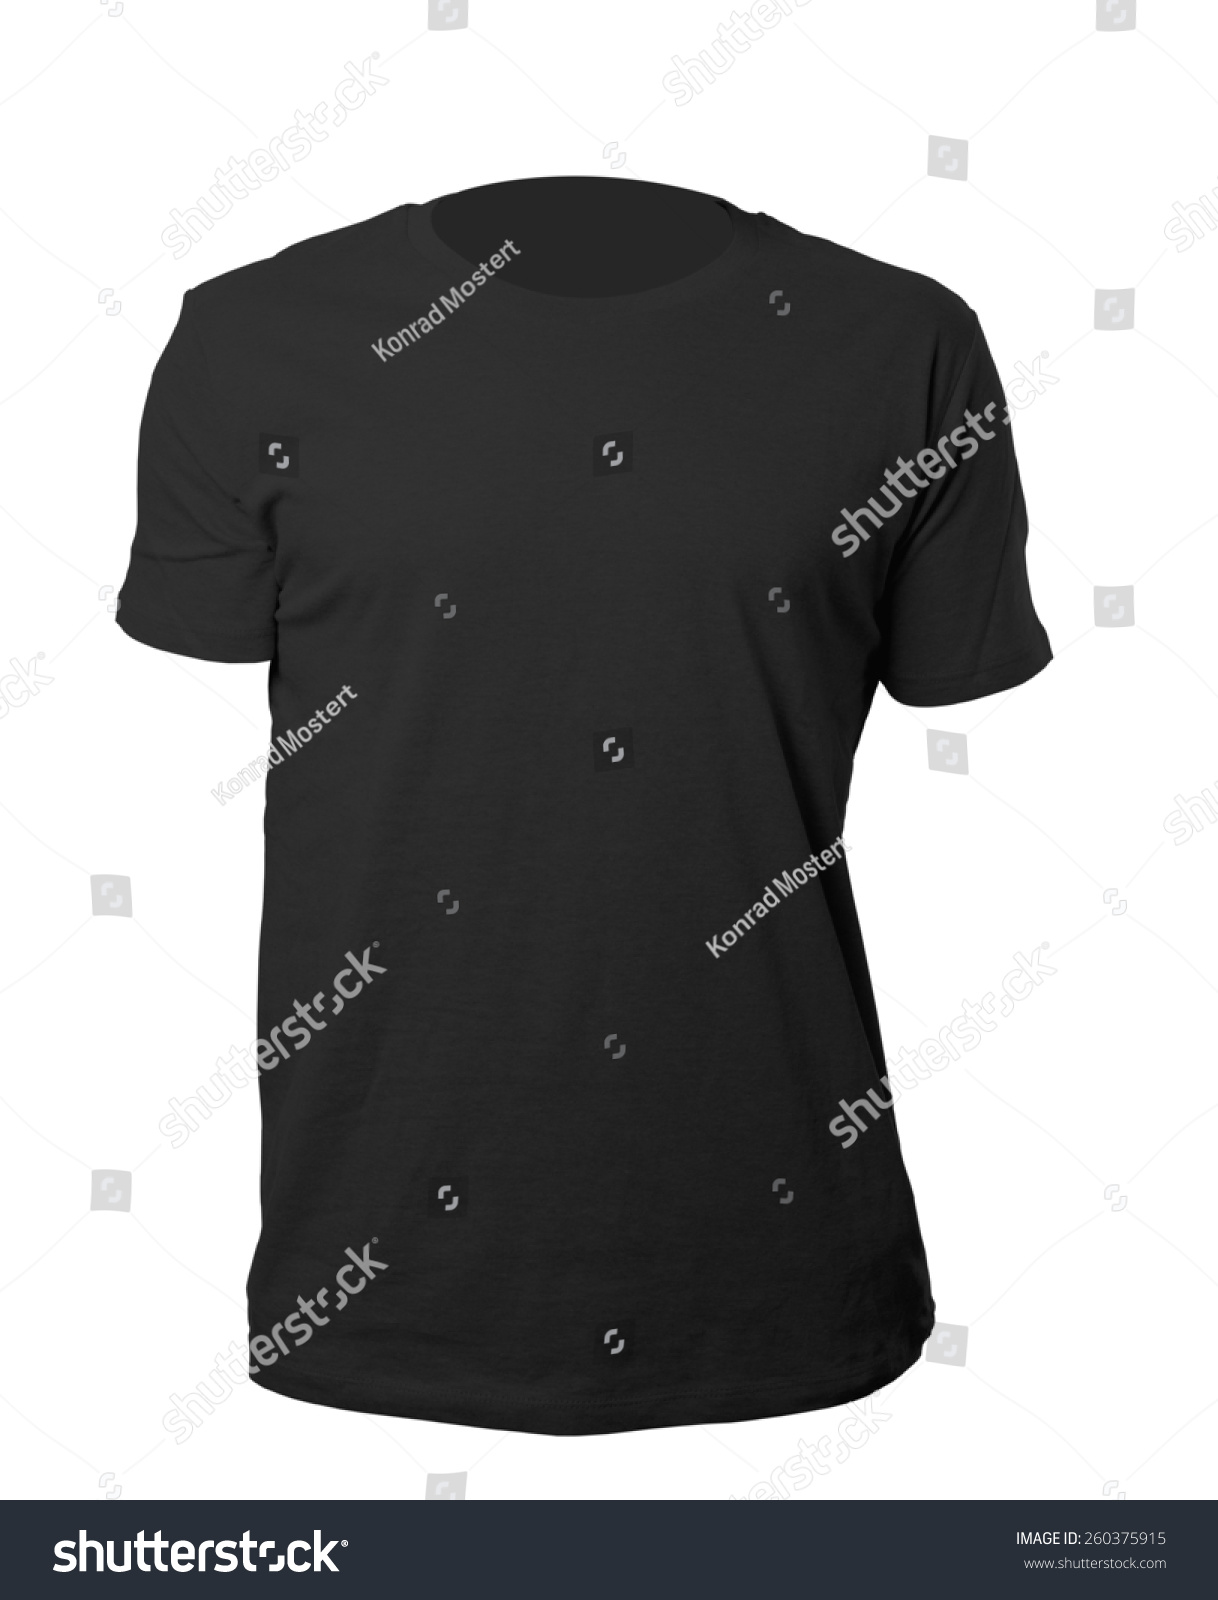 Black t shirt blank template - Black Blank Tshirt Template Isolated On White With Clipping Path